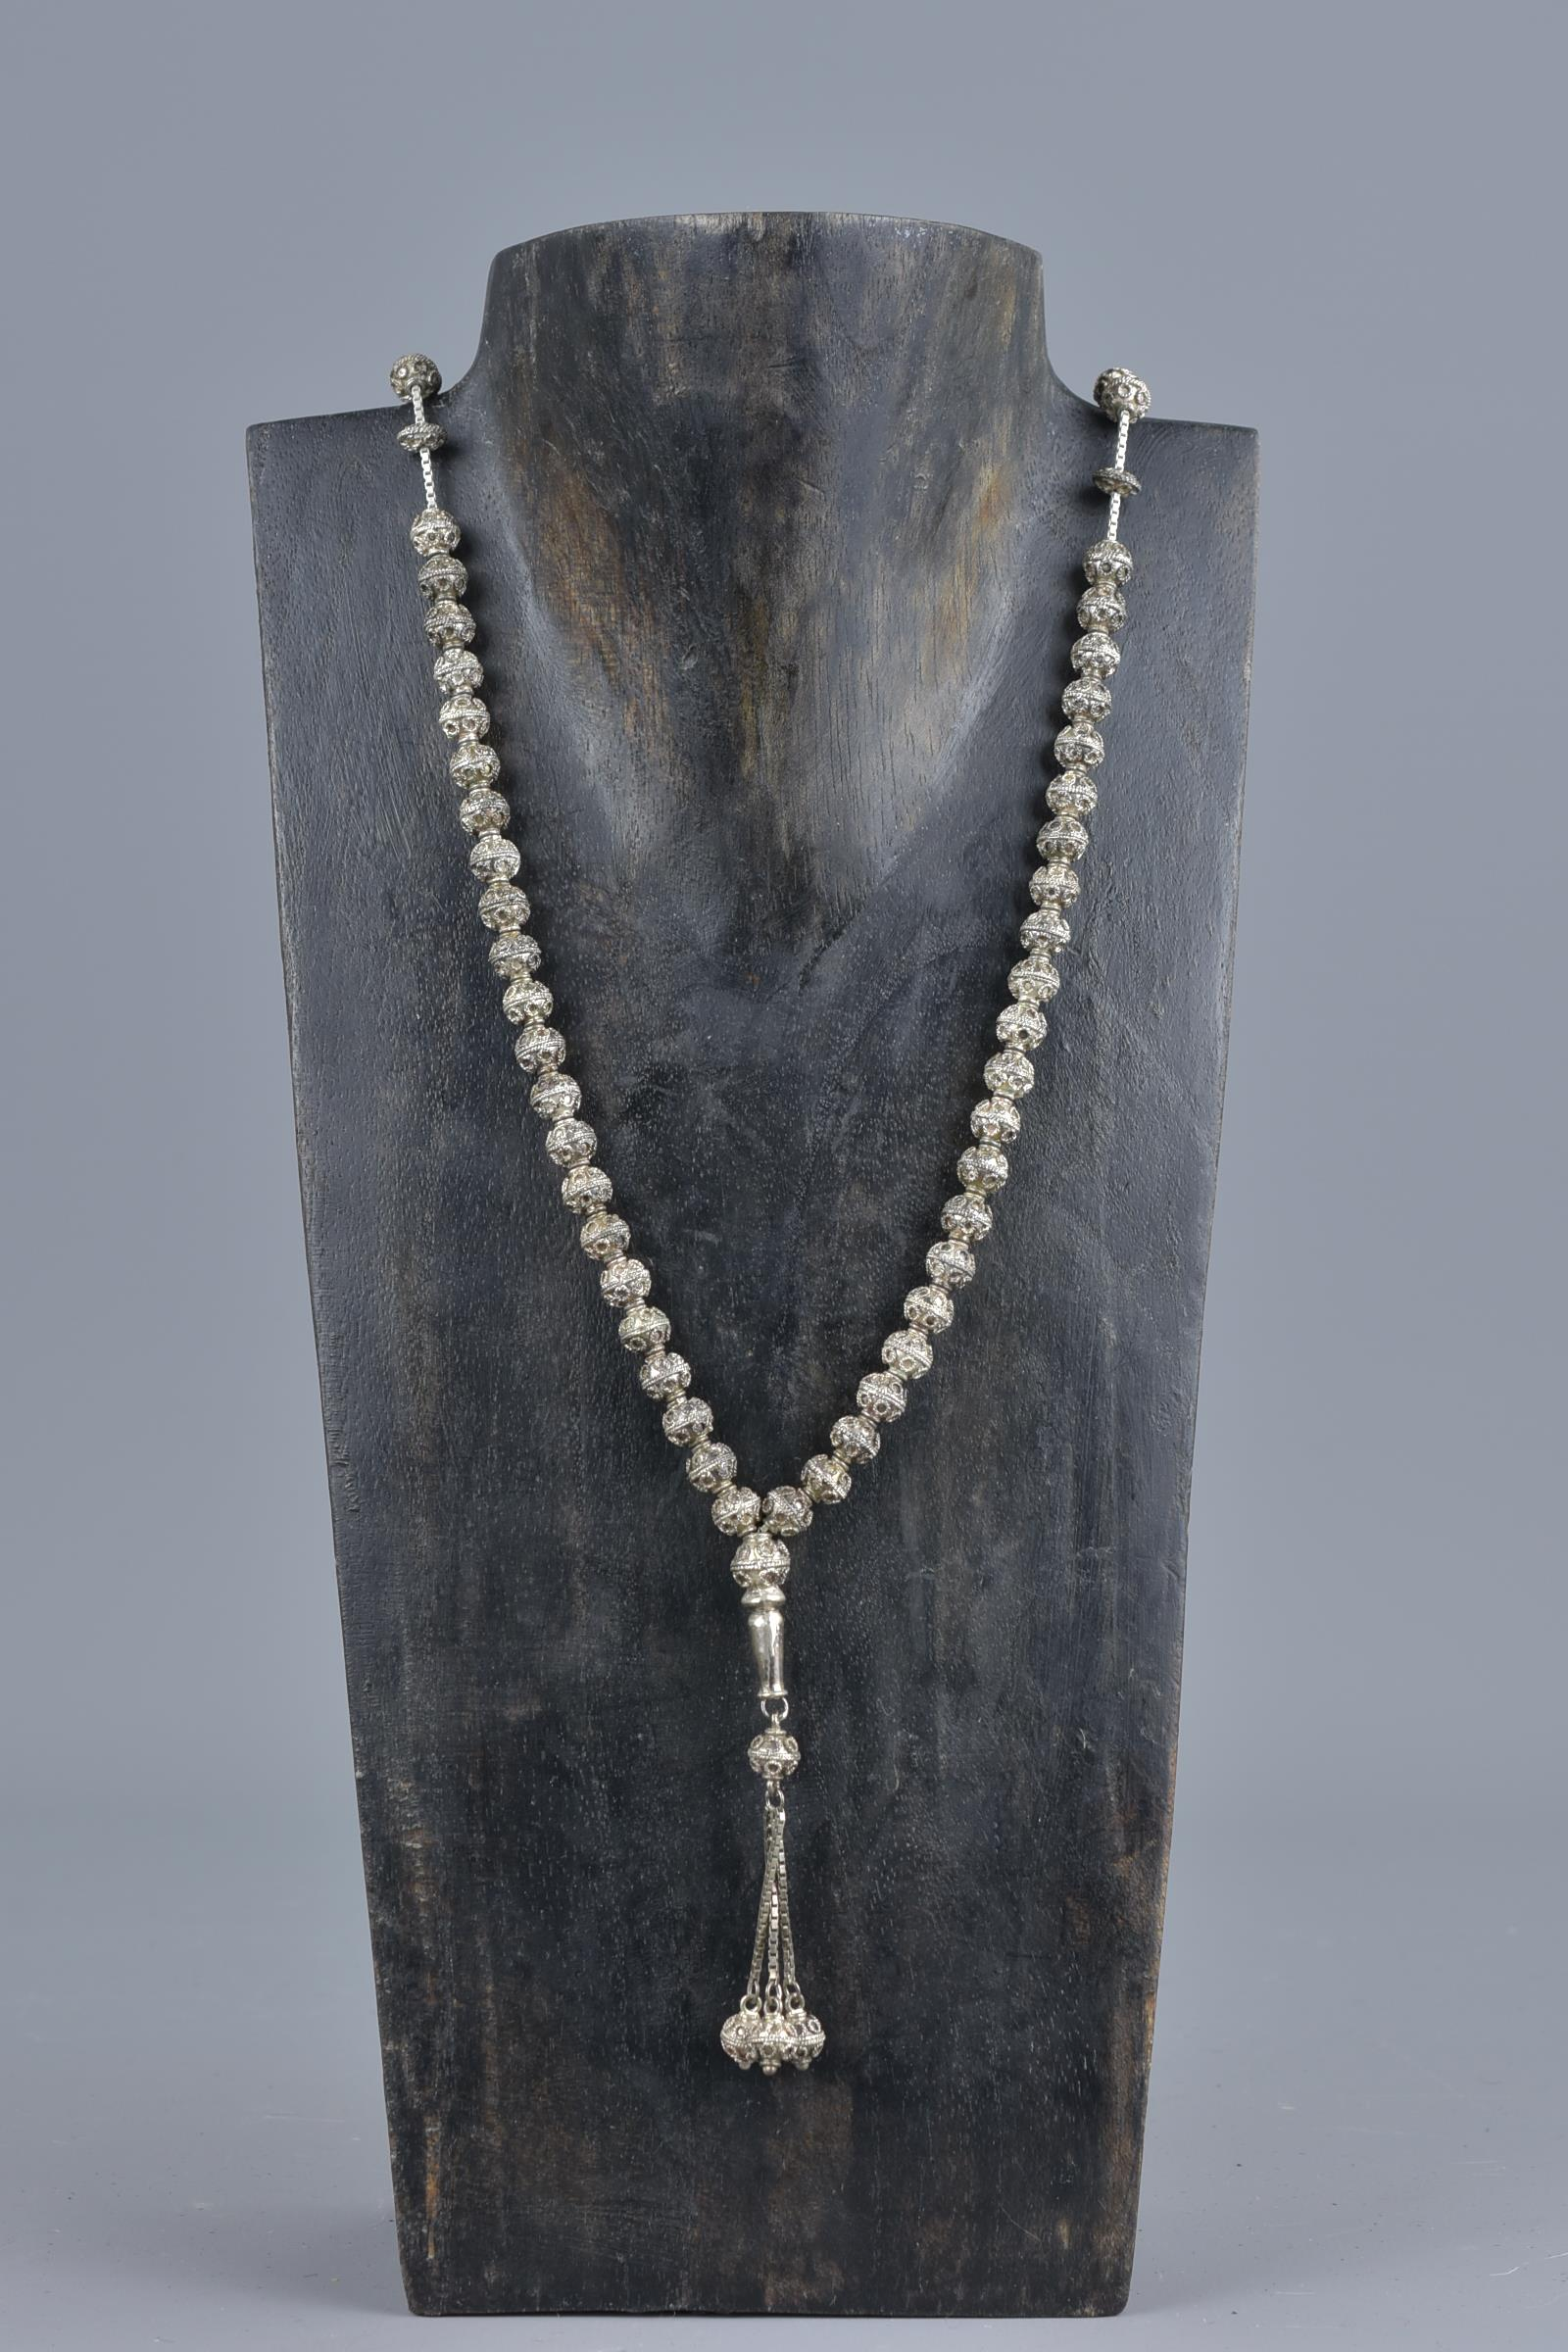 Lot 44 - Islamic 19/20th century silver-coloured metal prayer bead necklace